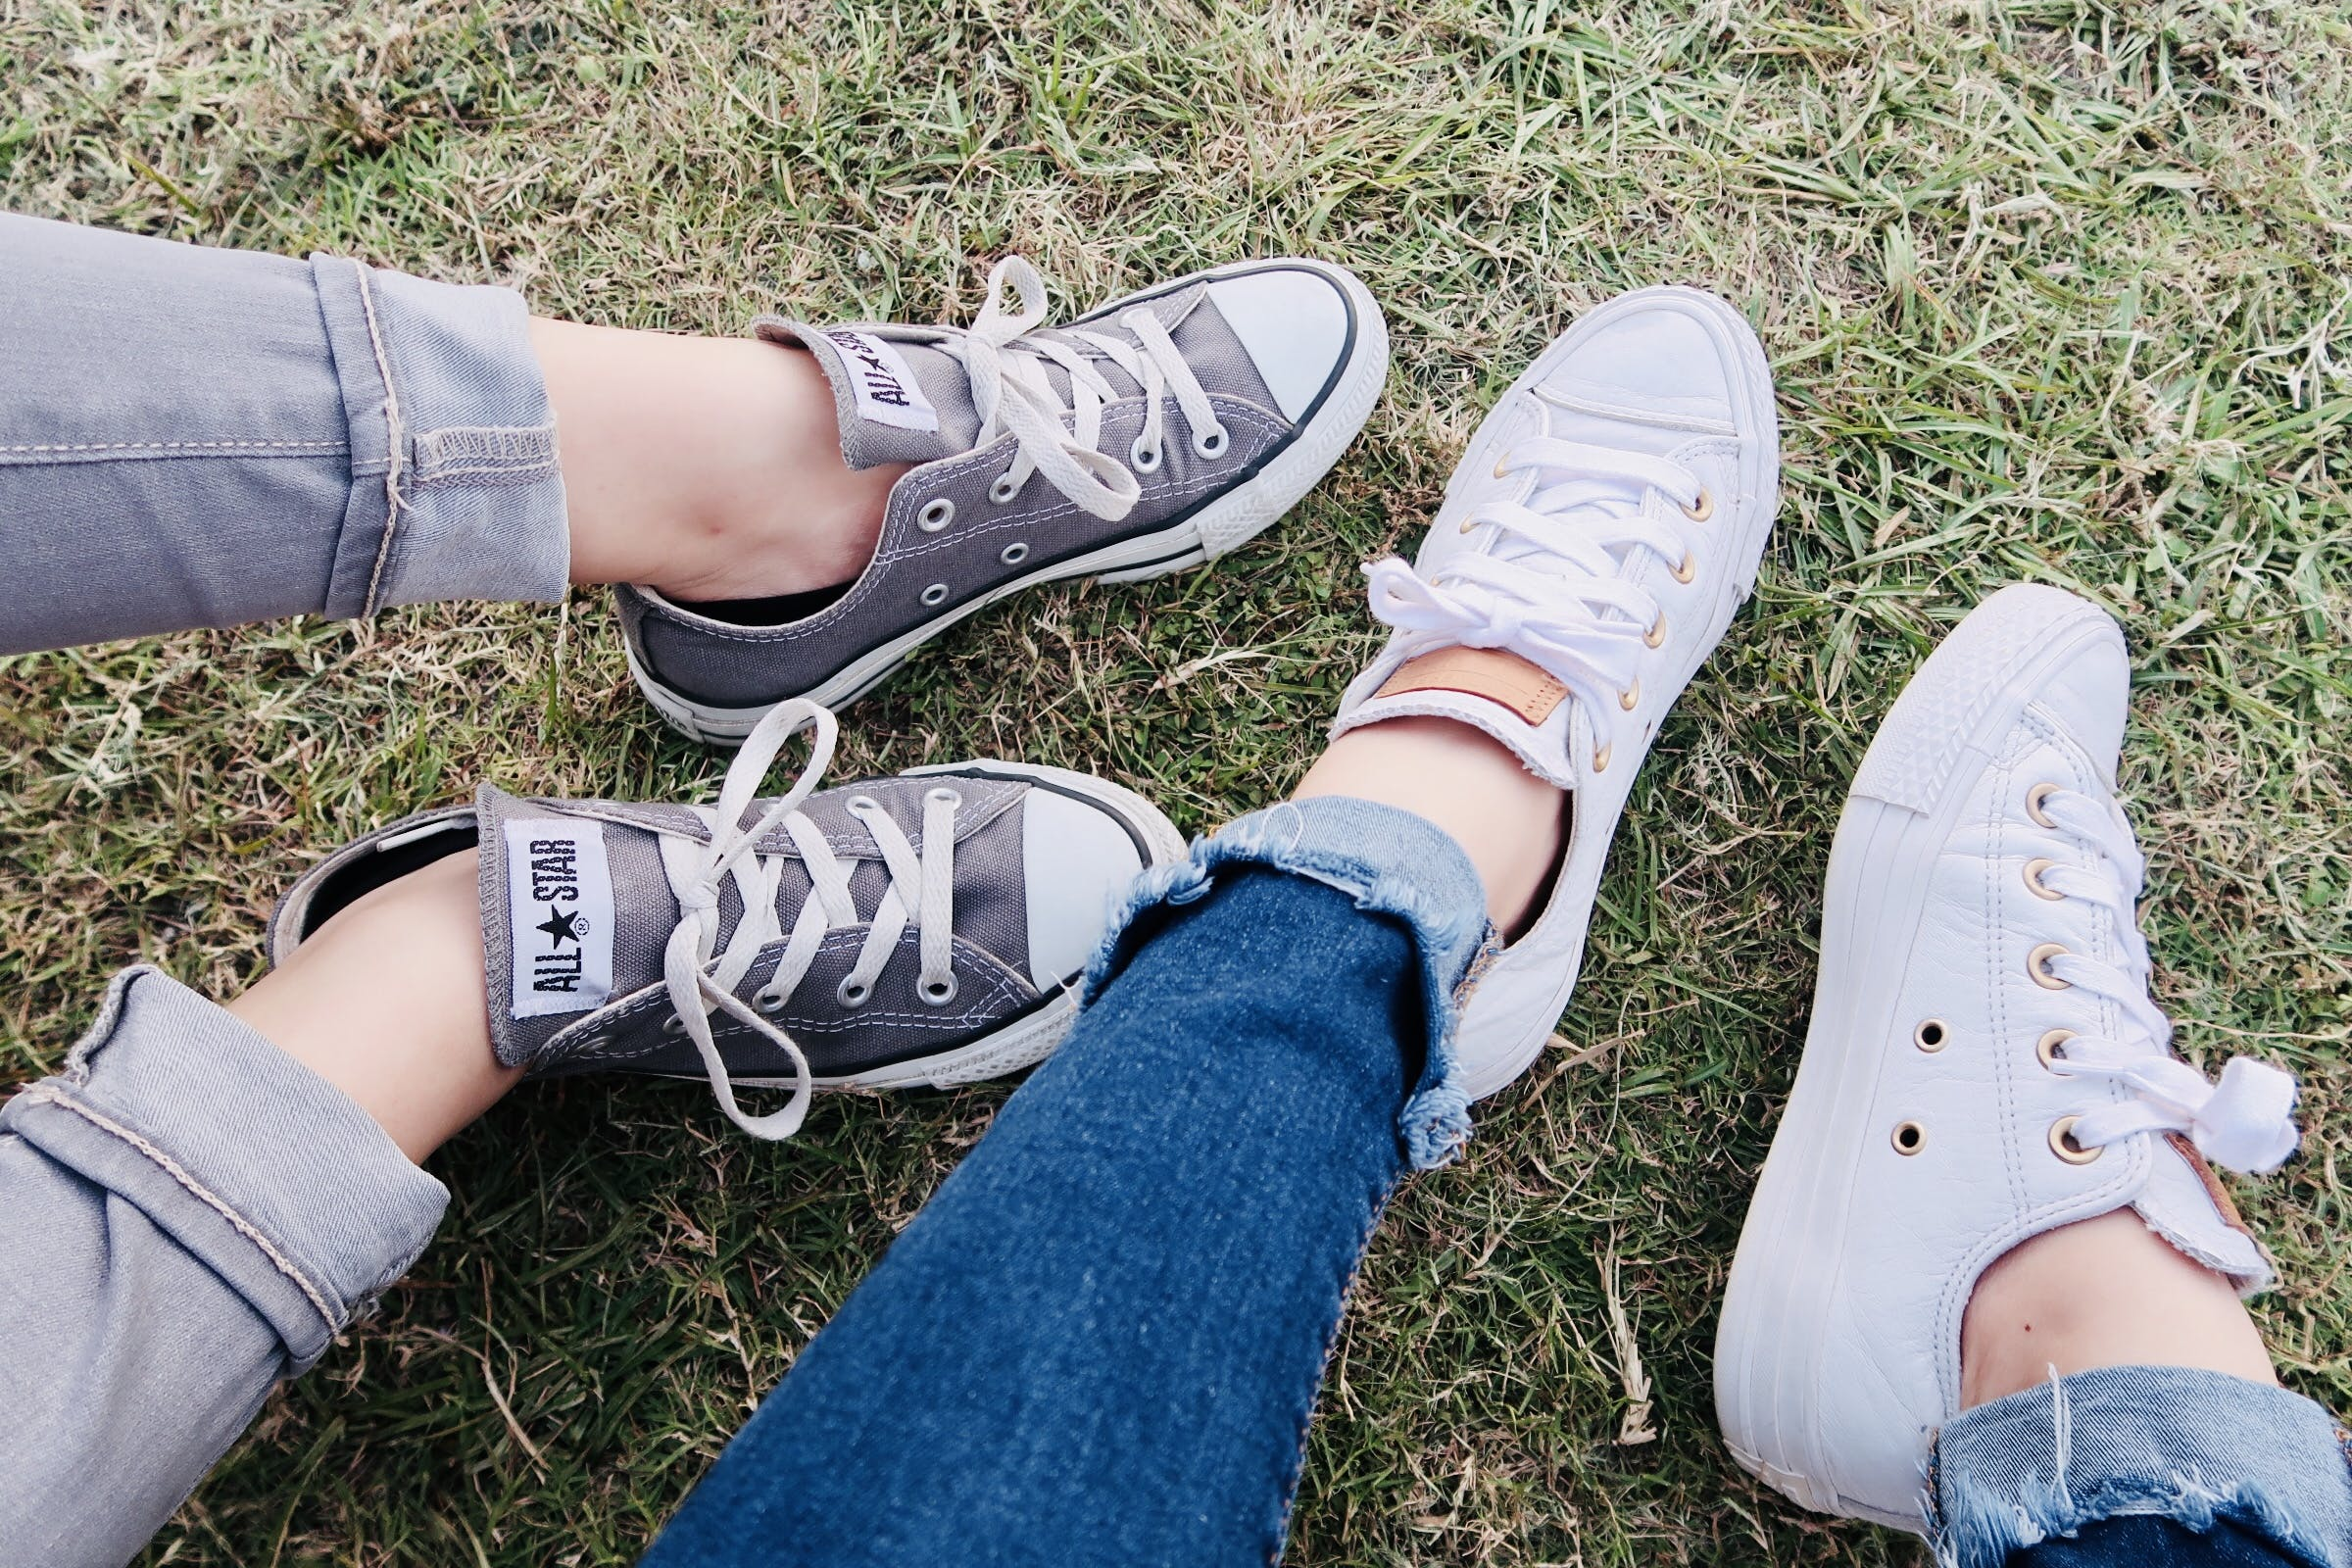 Two People Wearing Converse Allstar Low-top Sneakers